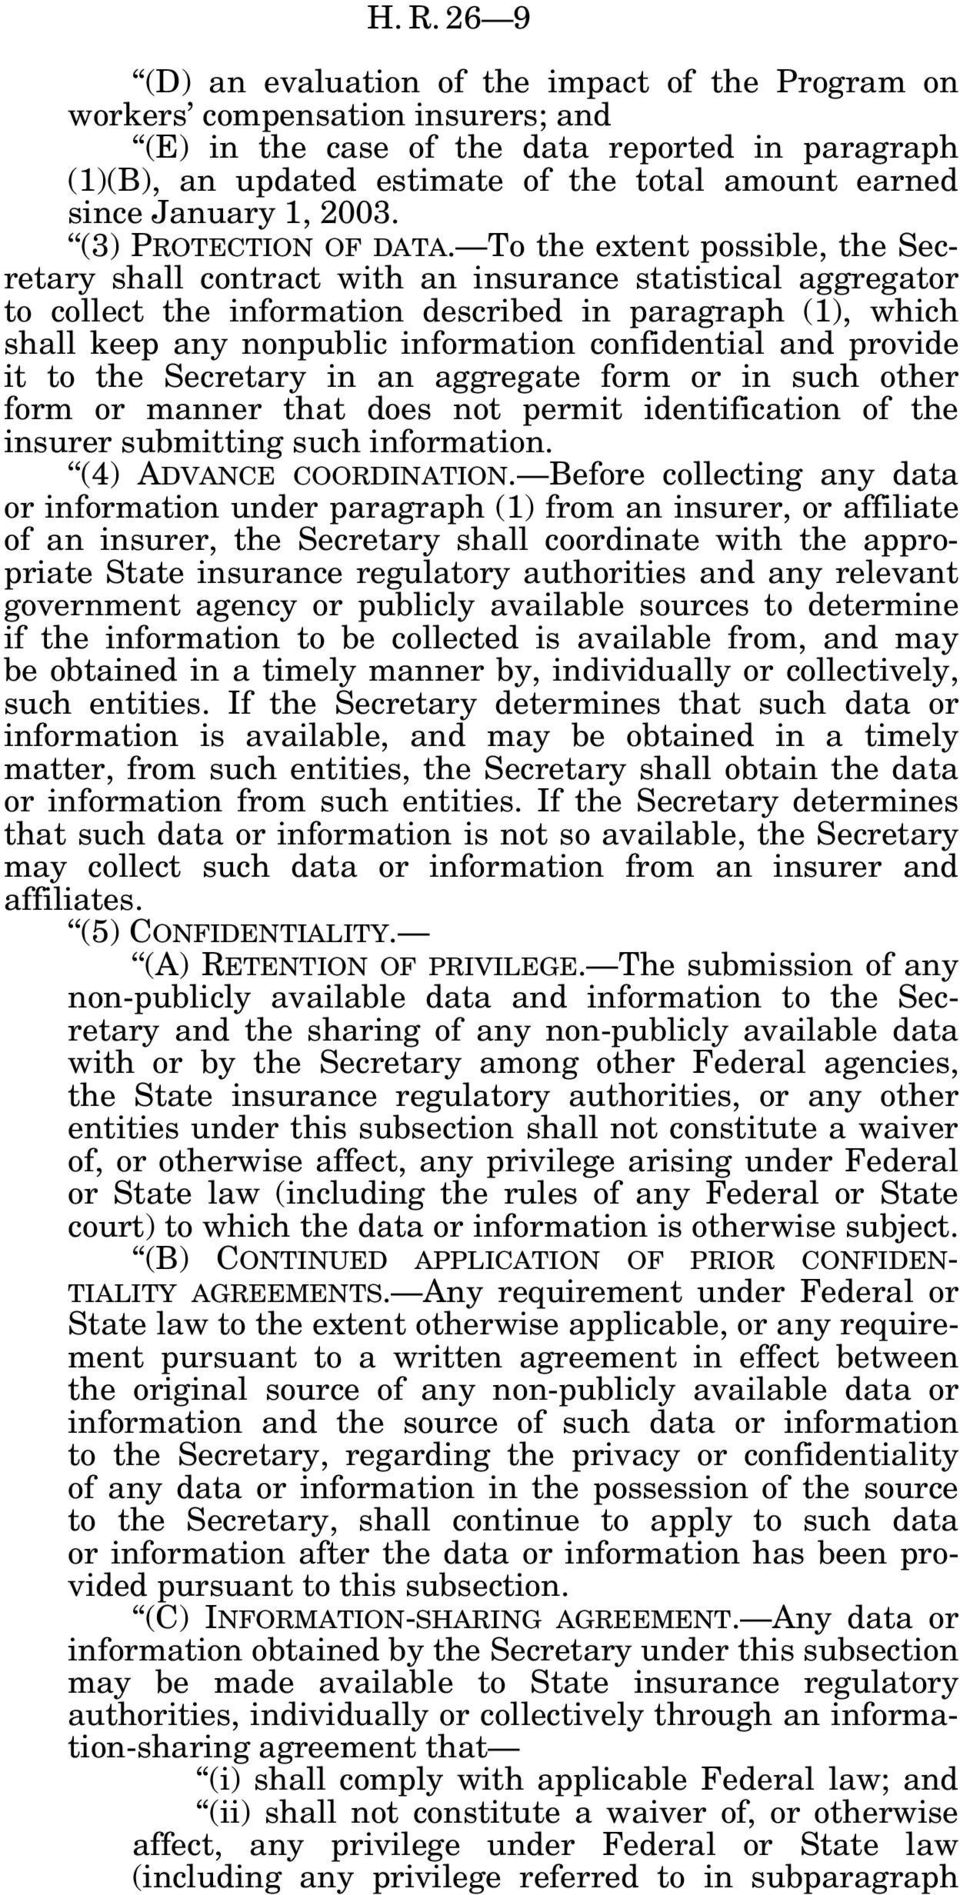 To the extent possible, the Secretary shall contract with an insurance statistical aggregator to collect the information described in paragraph (1), which shall keep any nonpublic information